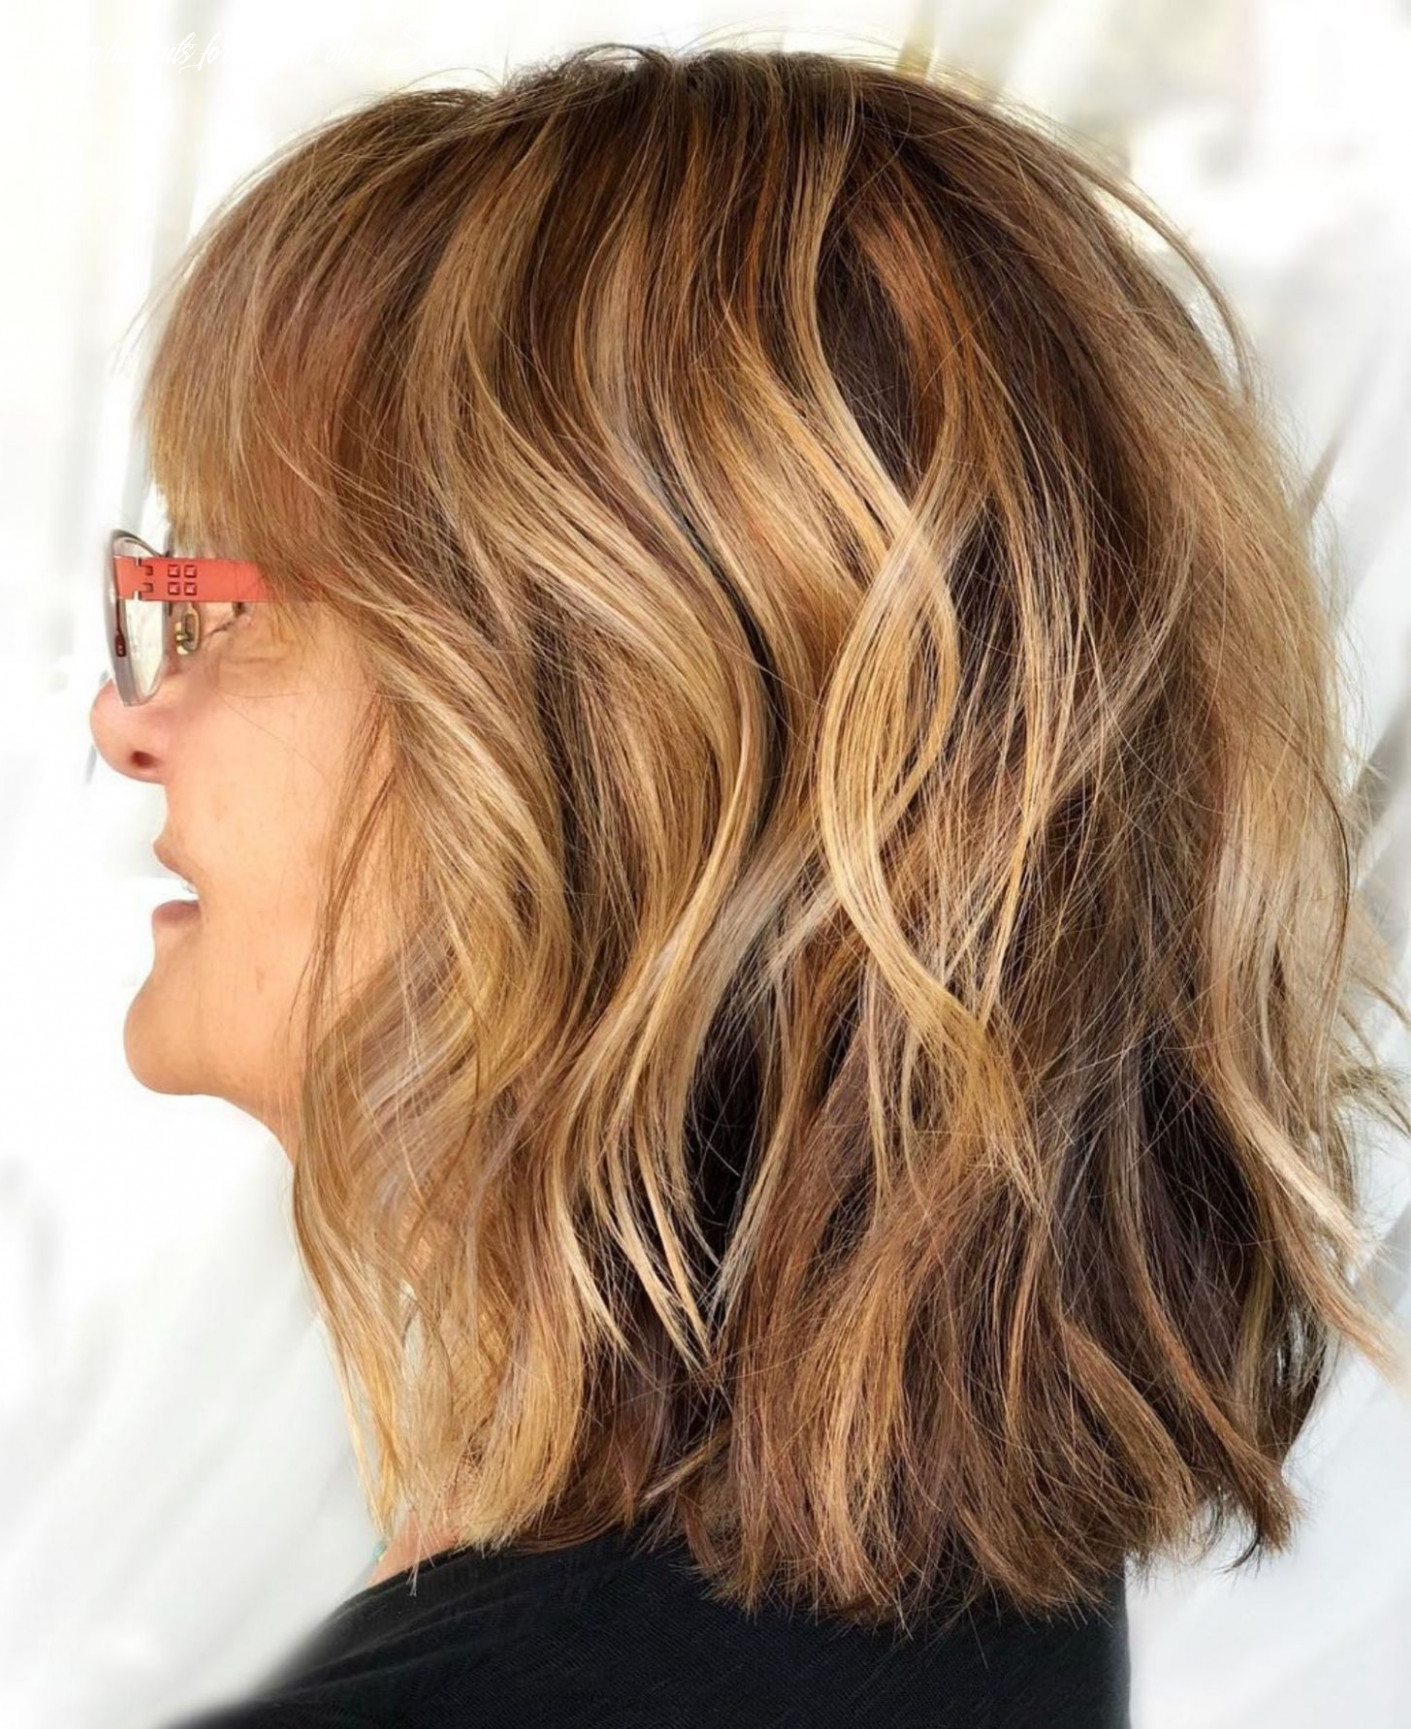 12 best modern hairstyles and haircuts for women over 12 (with